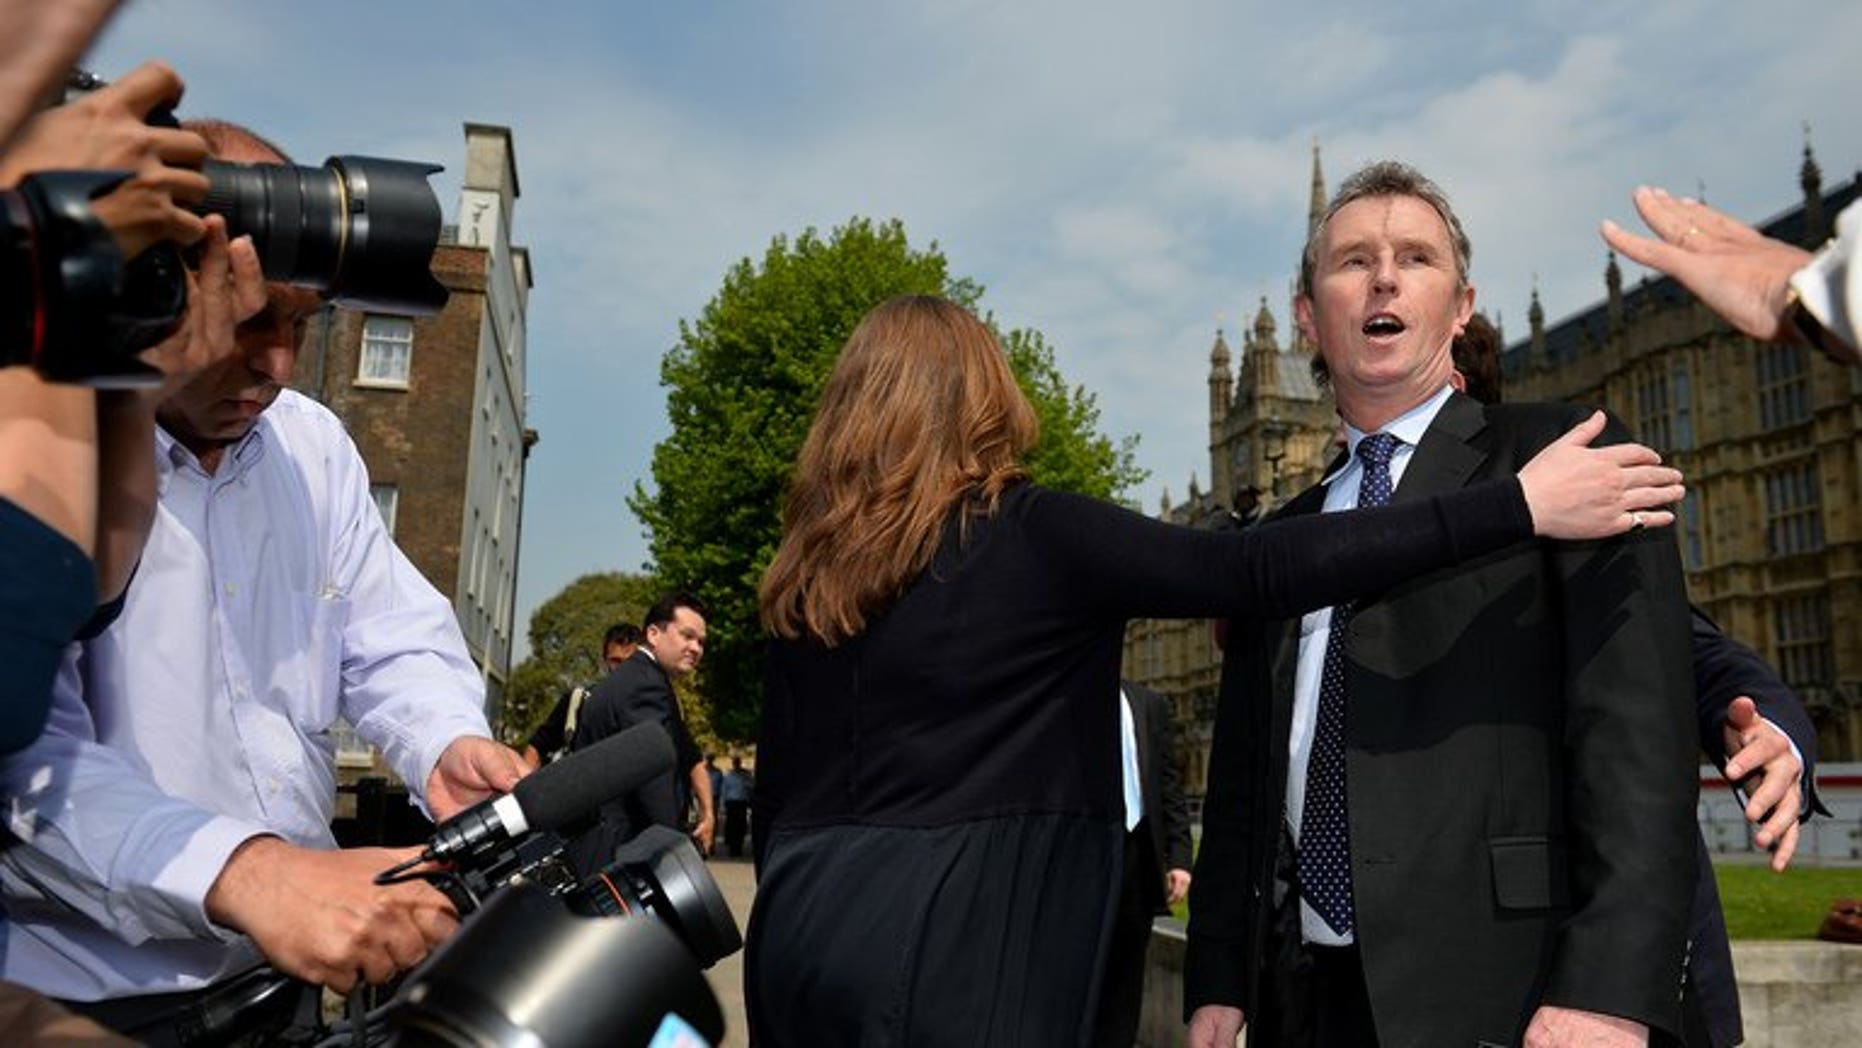 Journalists question deputy speaker Nigel Evans (R) outside London's Houses of Parliament, on May 7, 2013. Evans has been re-arrested on suspicion of indecent assault and sexually touching two further alleged victims, police said.